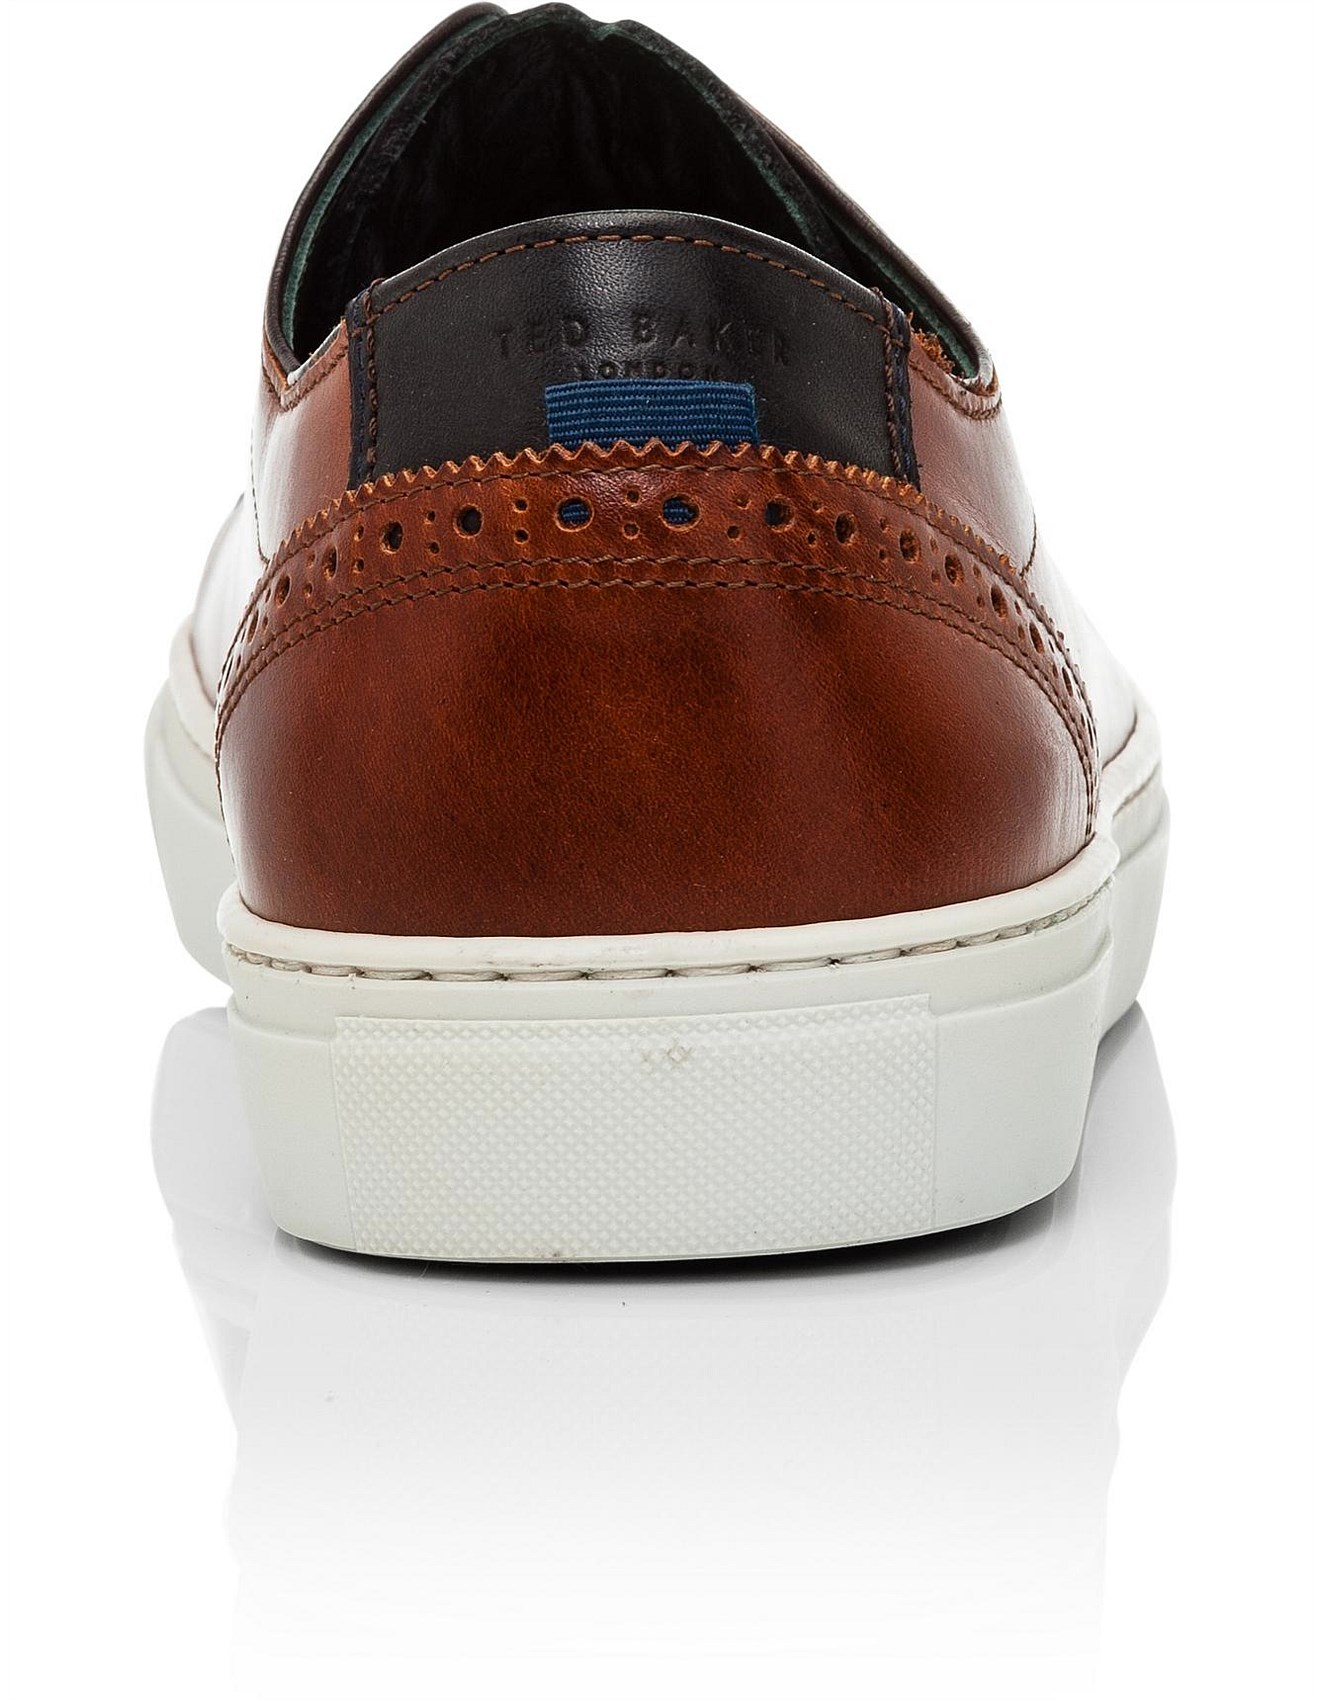 10567bc171b8e DUUKE LEATHER SNEAKER Special Offer On Sale. 1  2  3. Zoom. Ted Baker